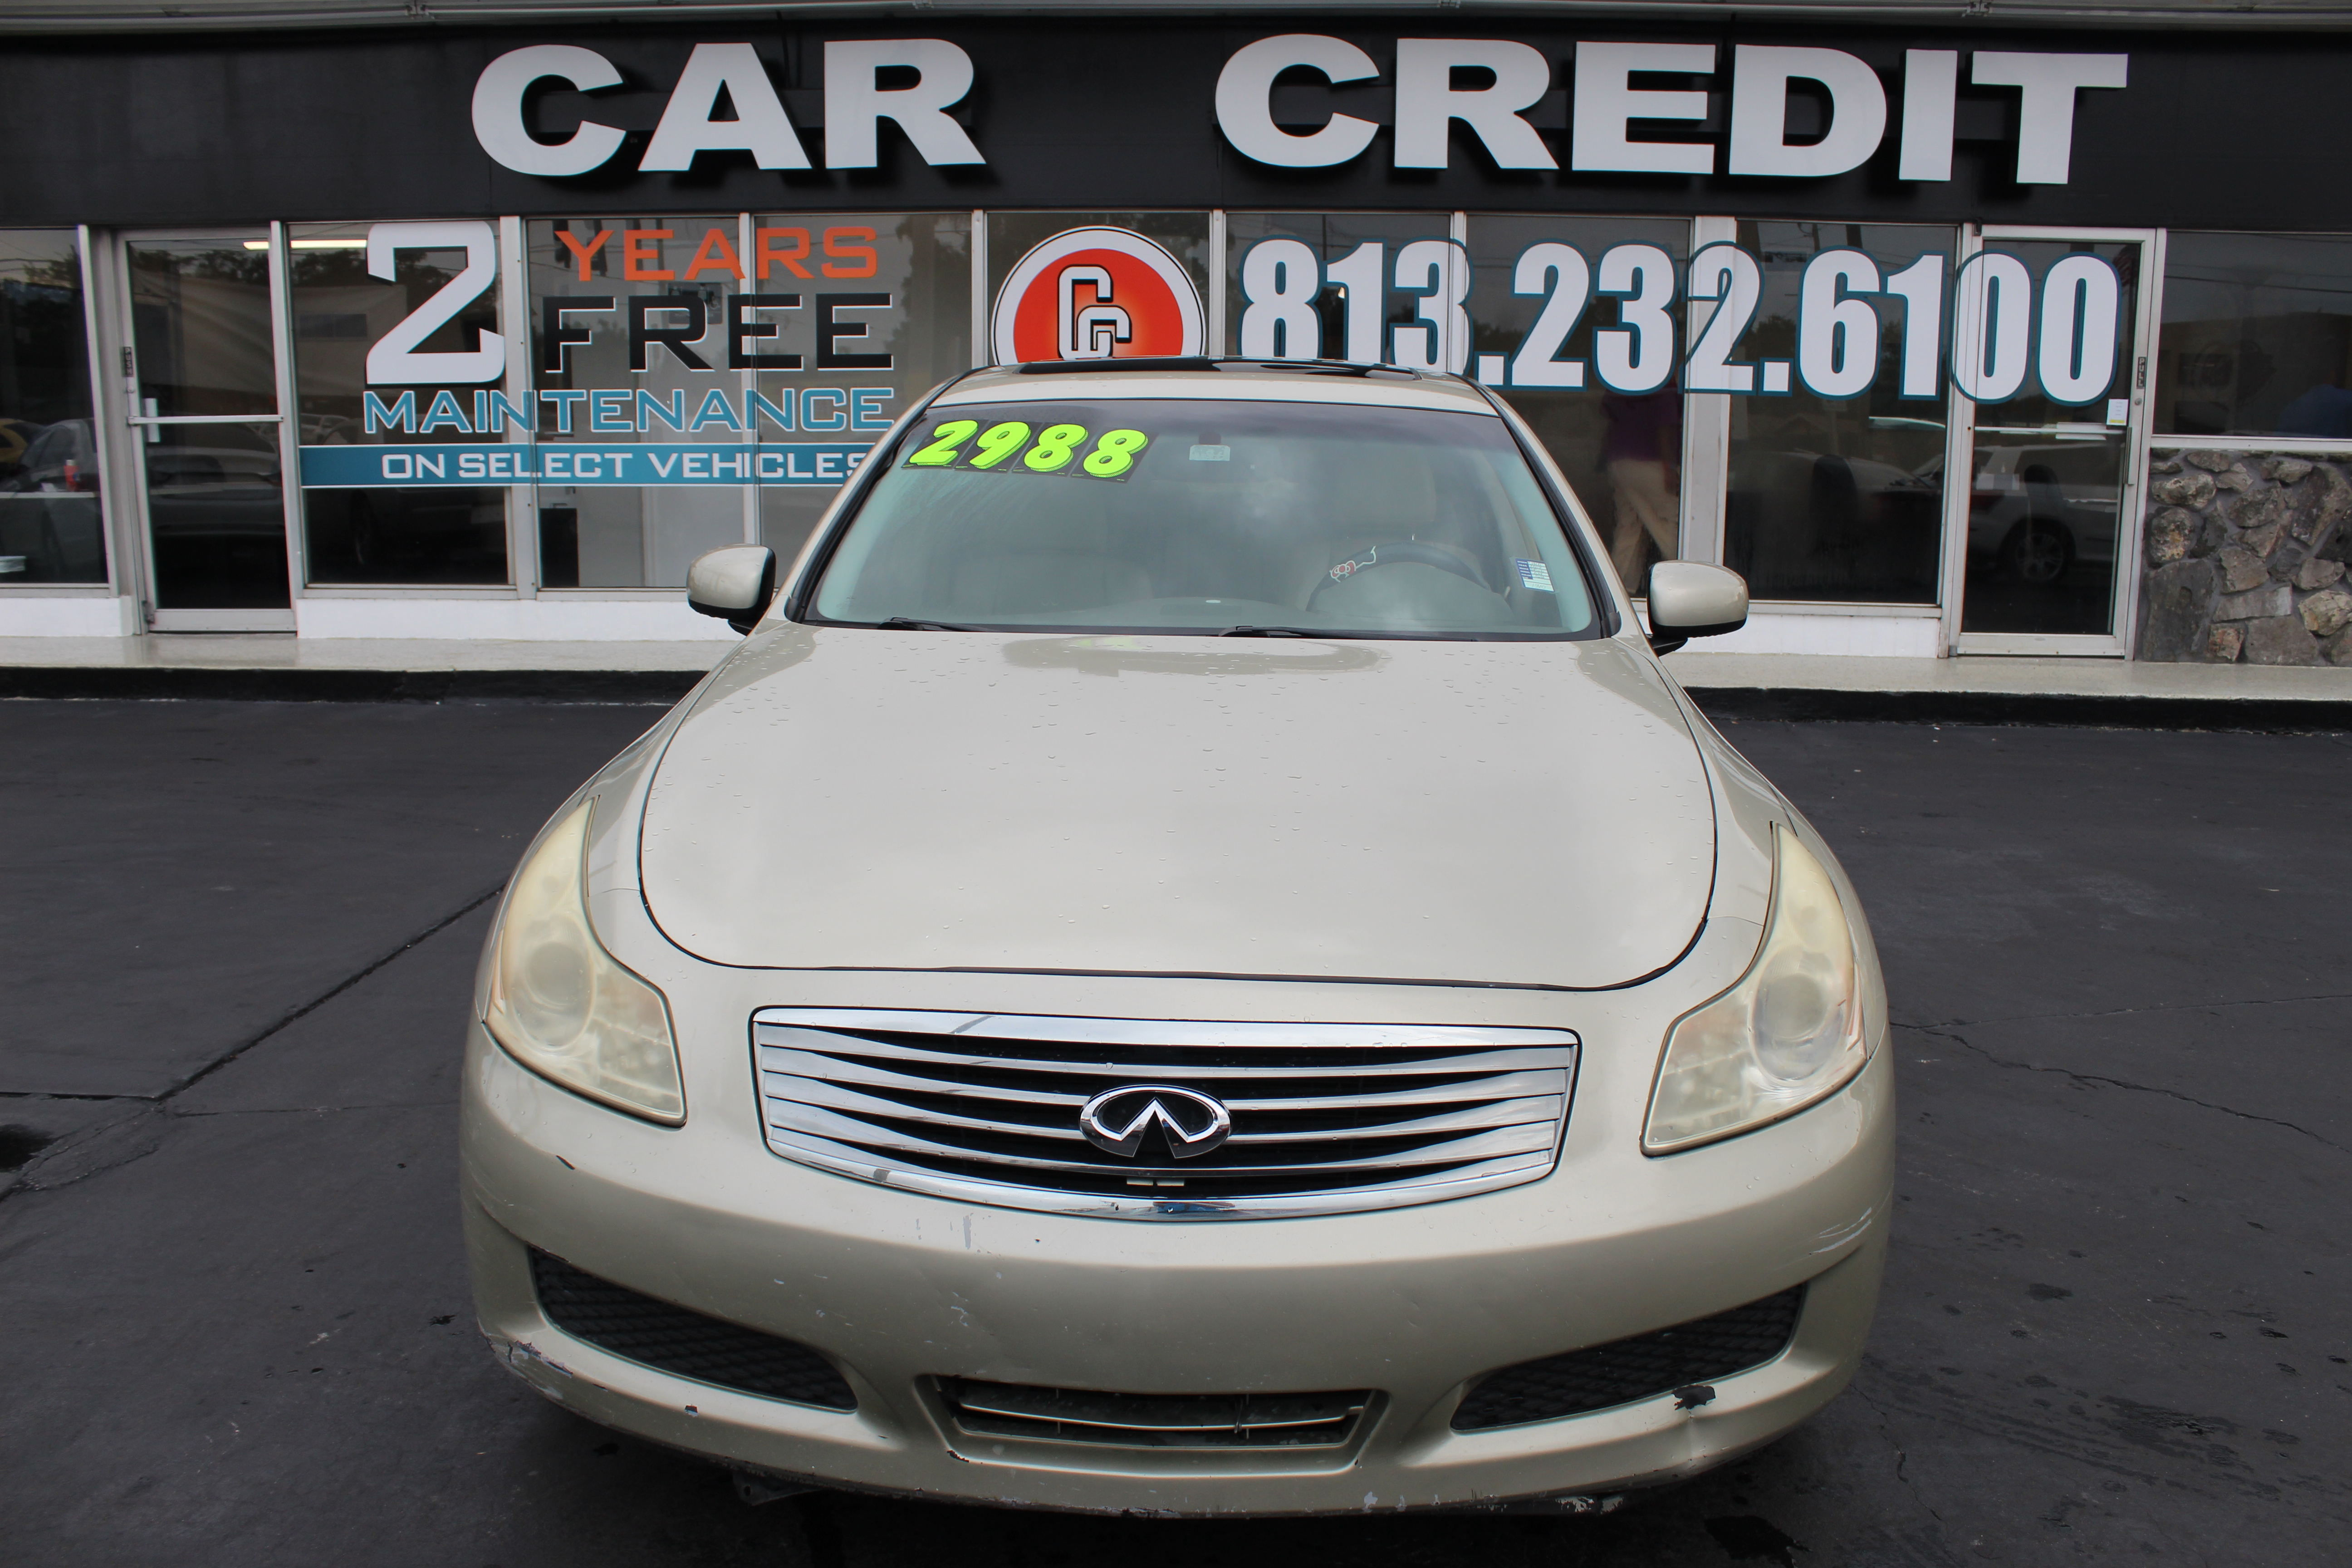 Pre-Owned 2007 INFINITI G35 Sedan Journey